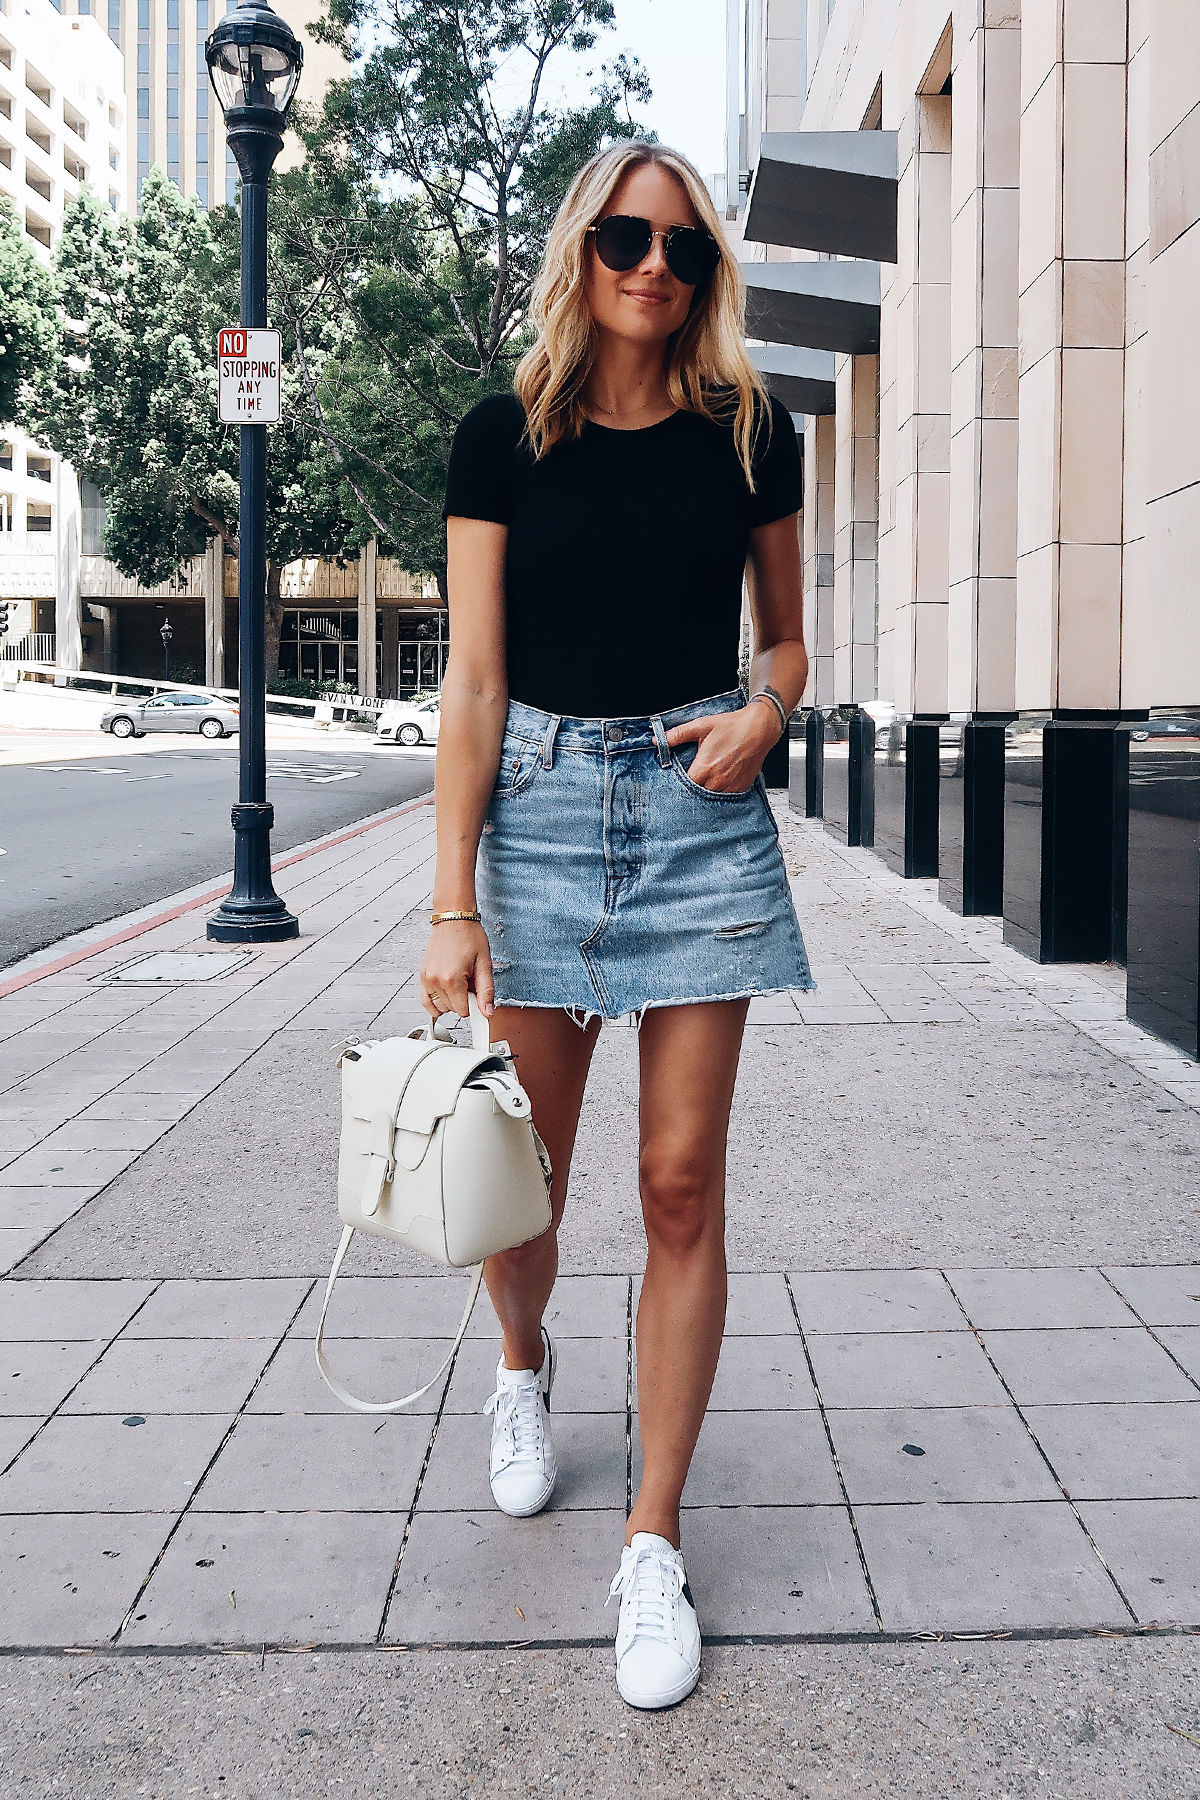 79a82dfd69436 Blonde Woman Wearing Short Sleeve Black Bodysuit Levis Denim Skirt Nike  White Sneakers Senreve White Mini